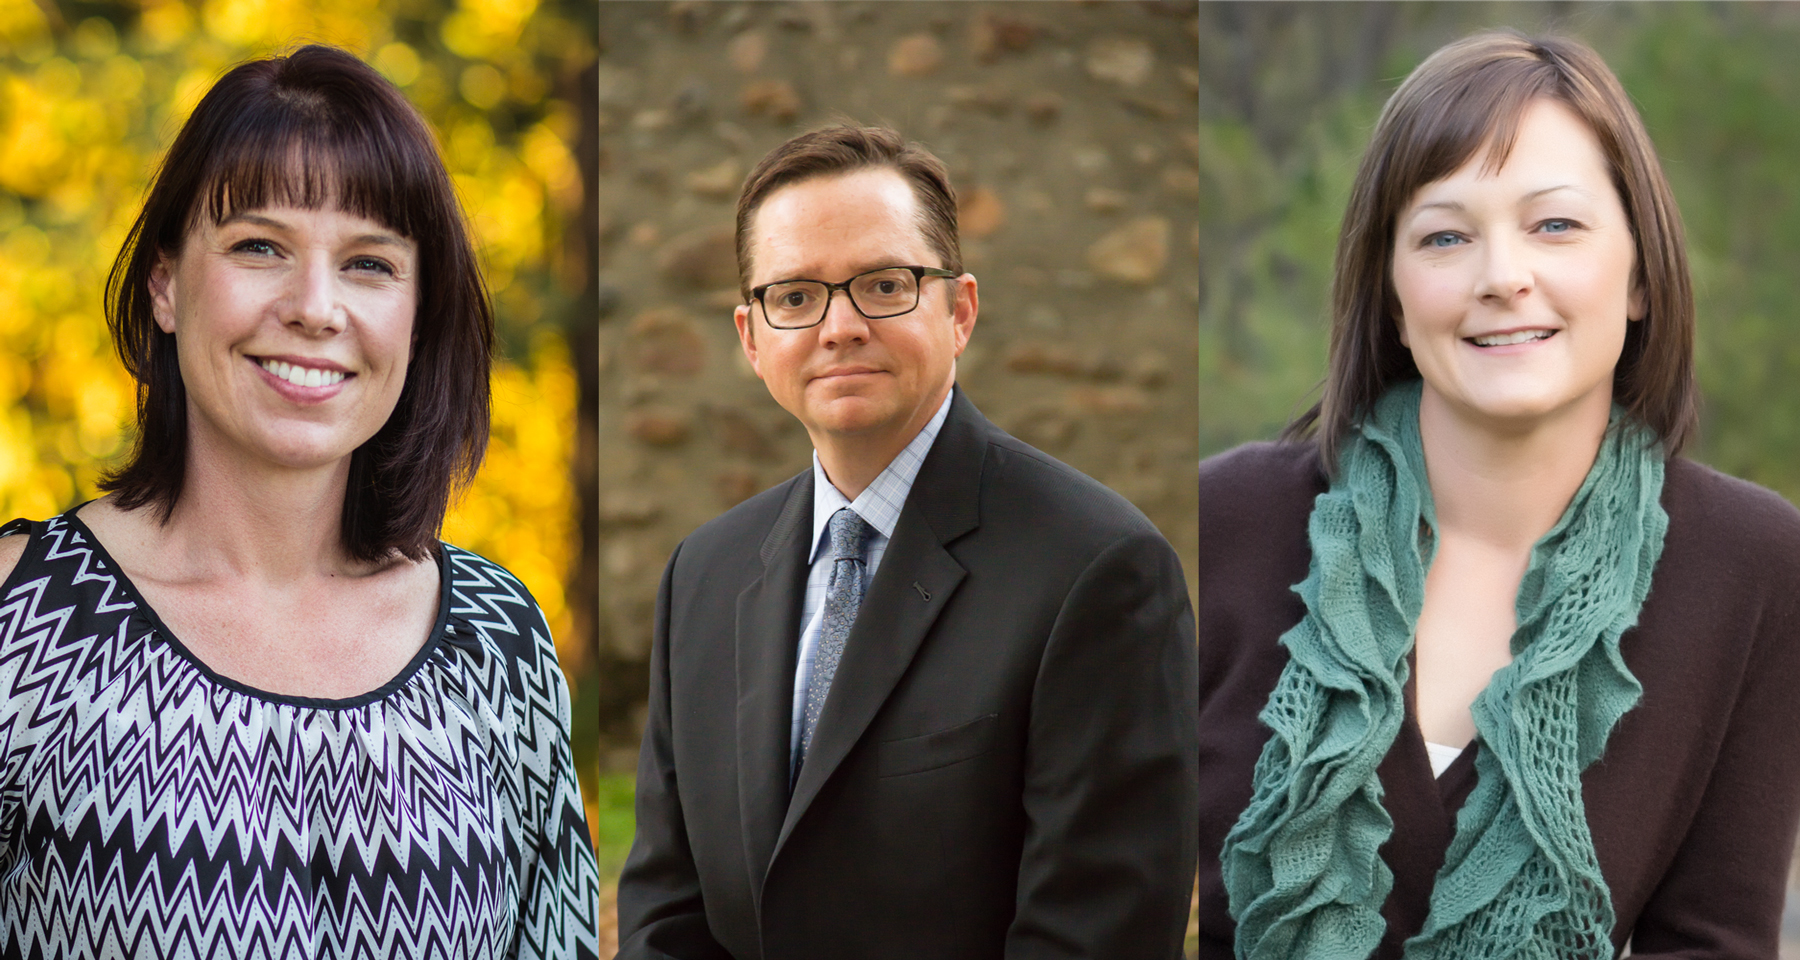 headshot photos for business | Placerville Everyday Photos